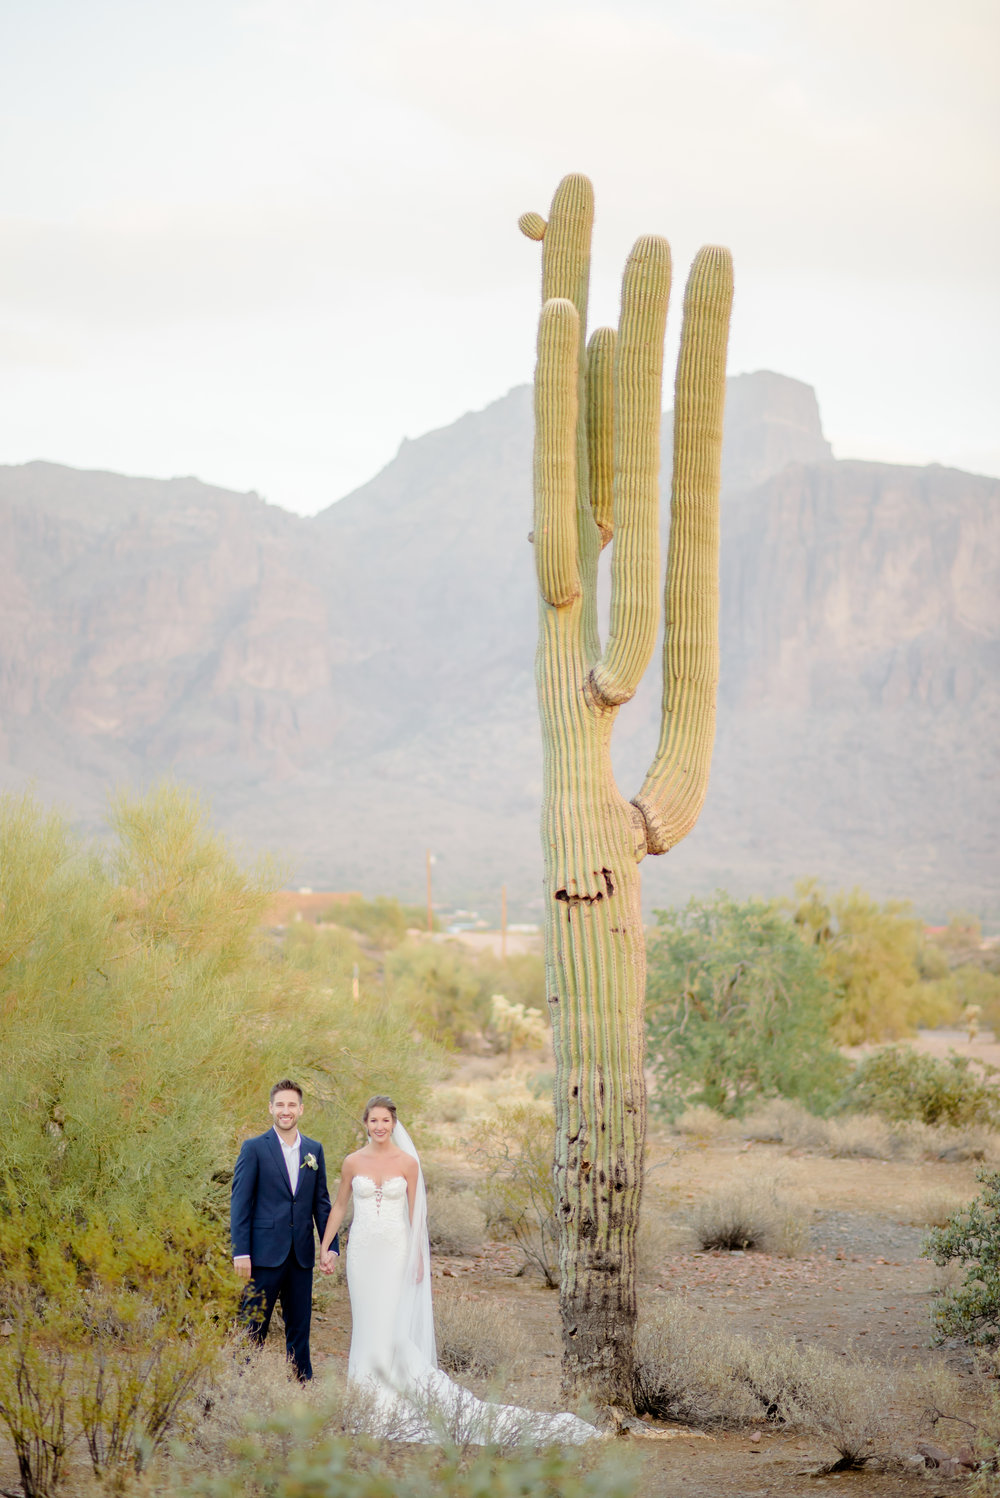 The Paseo Wedding Premiere Destination Arizona Location - www.theamburgeys.com-840.jpg